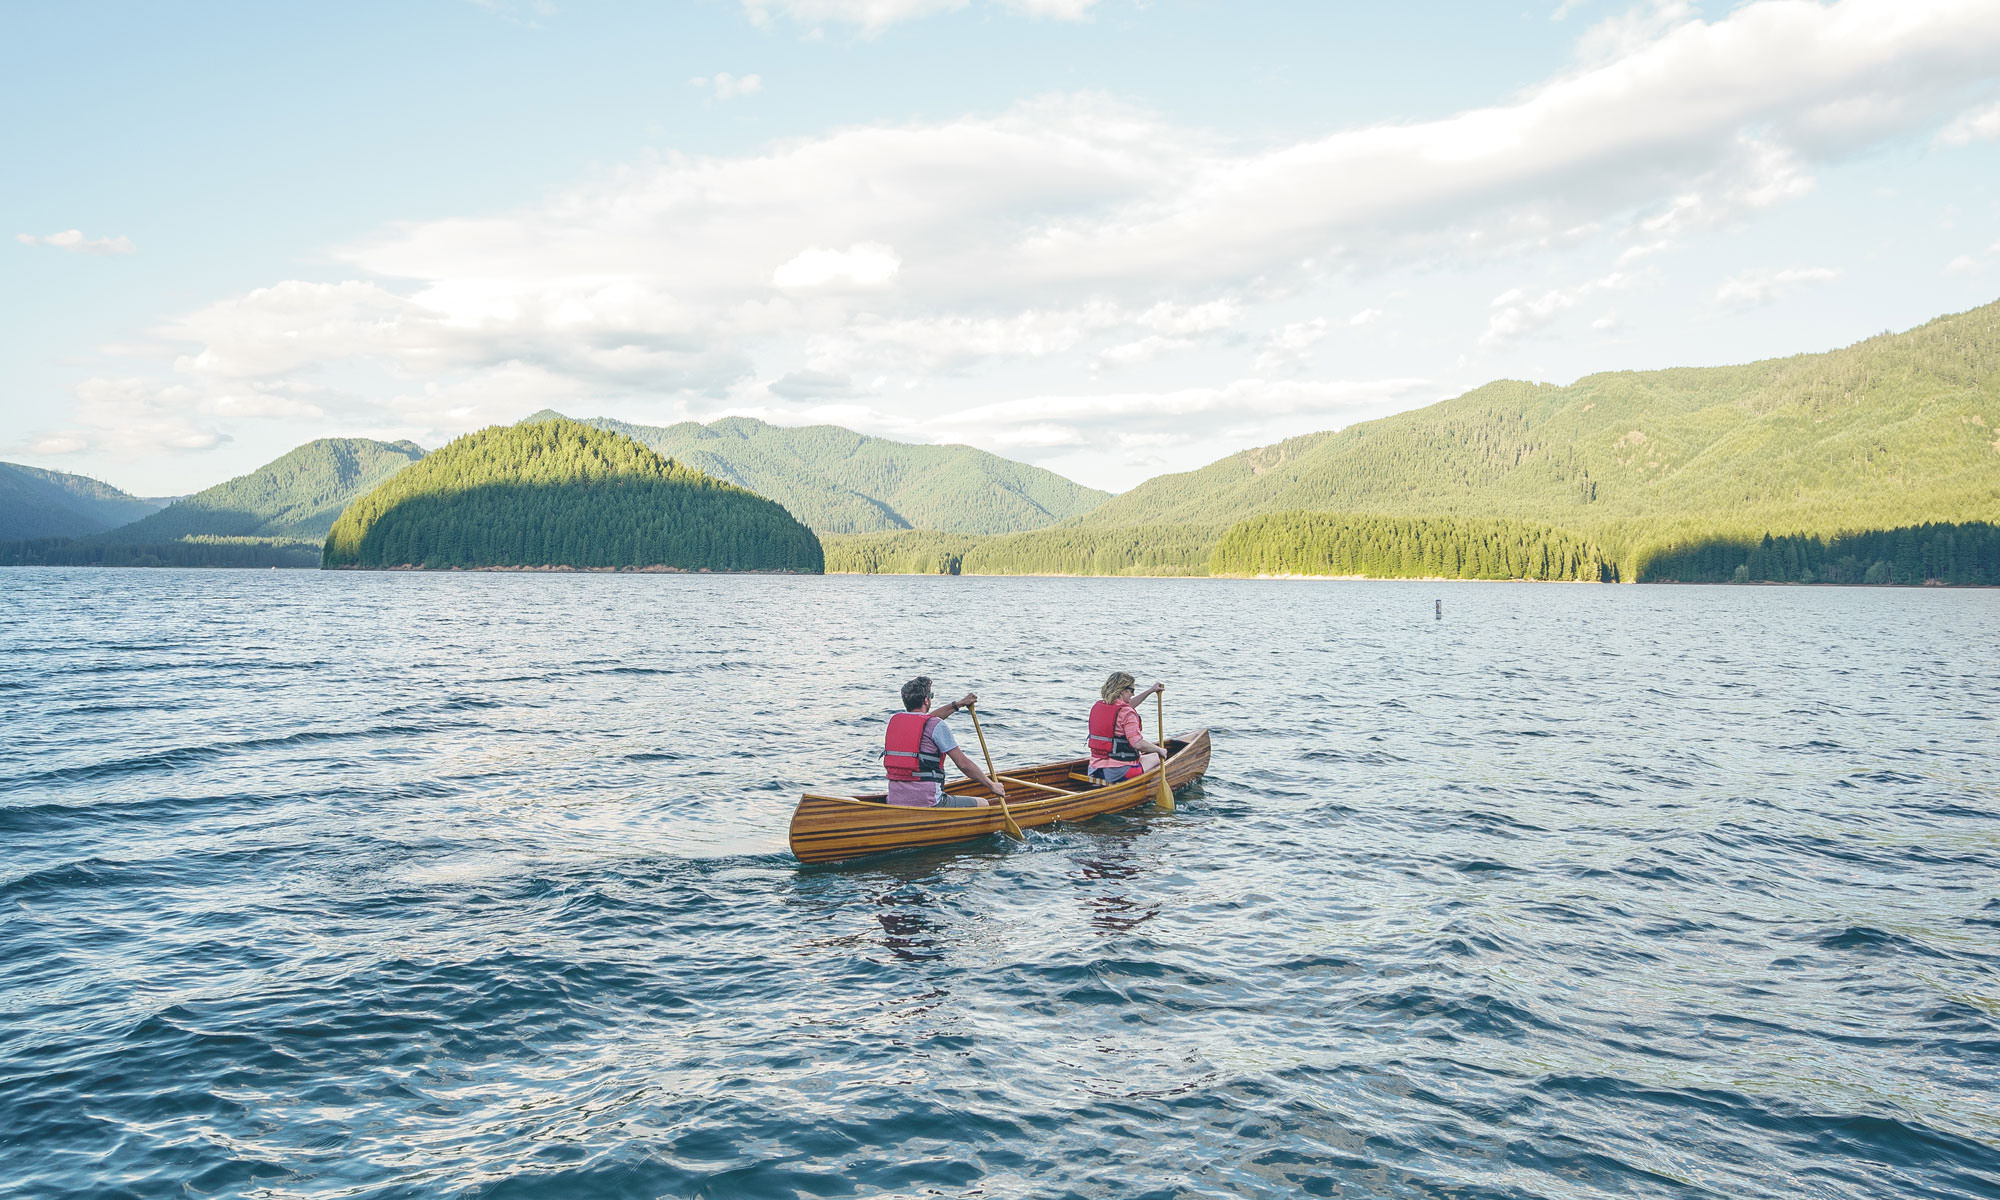 Two people paddle a canoe in a blue-water lake.